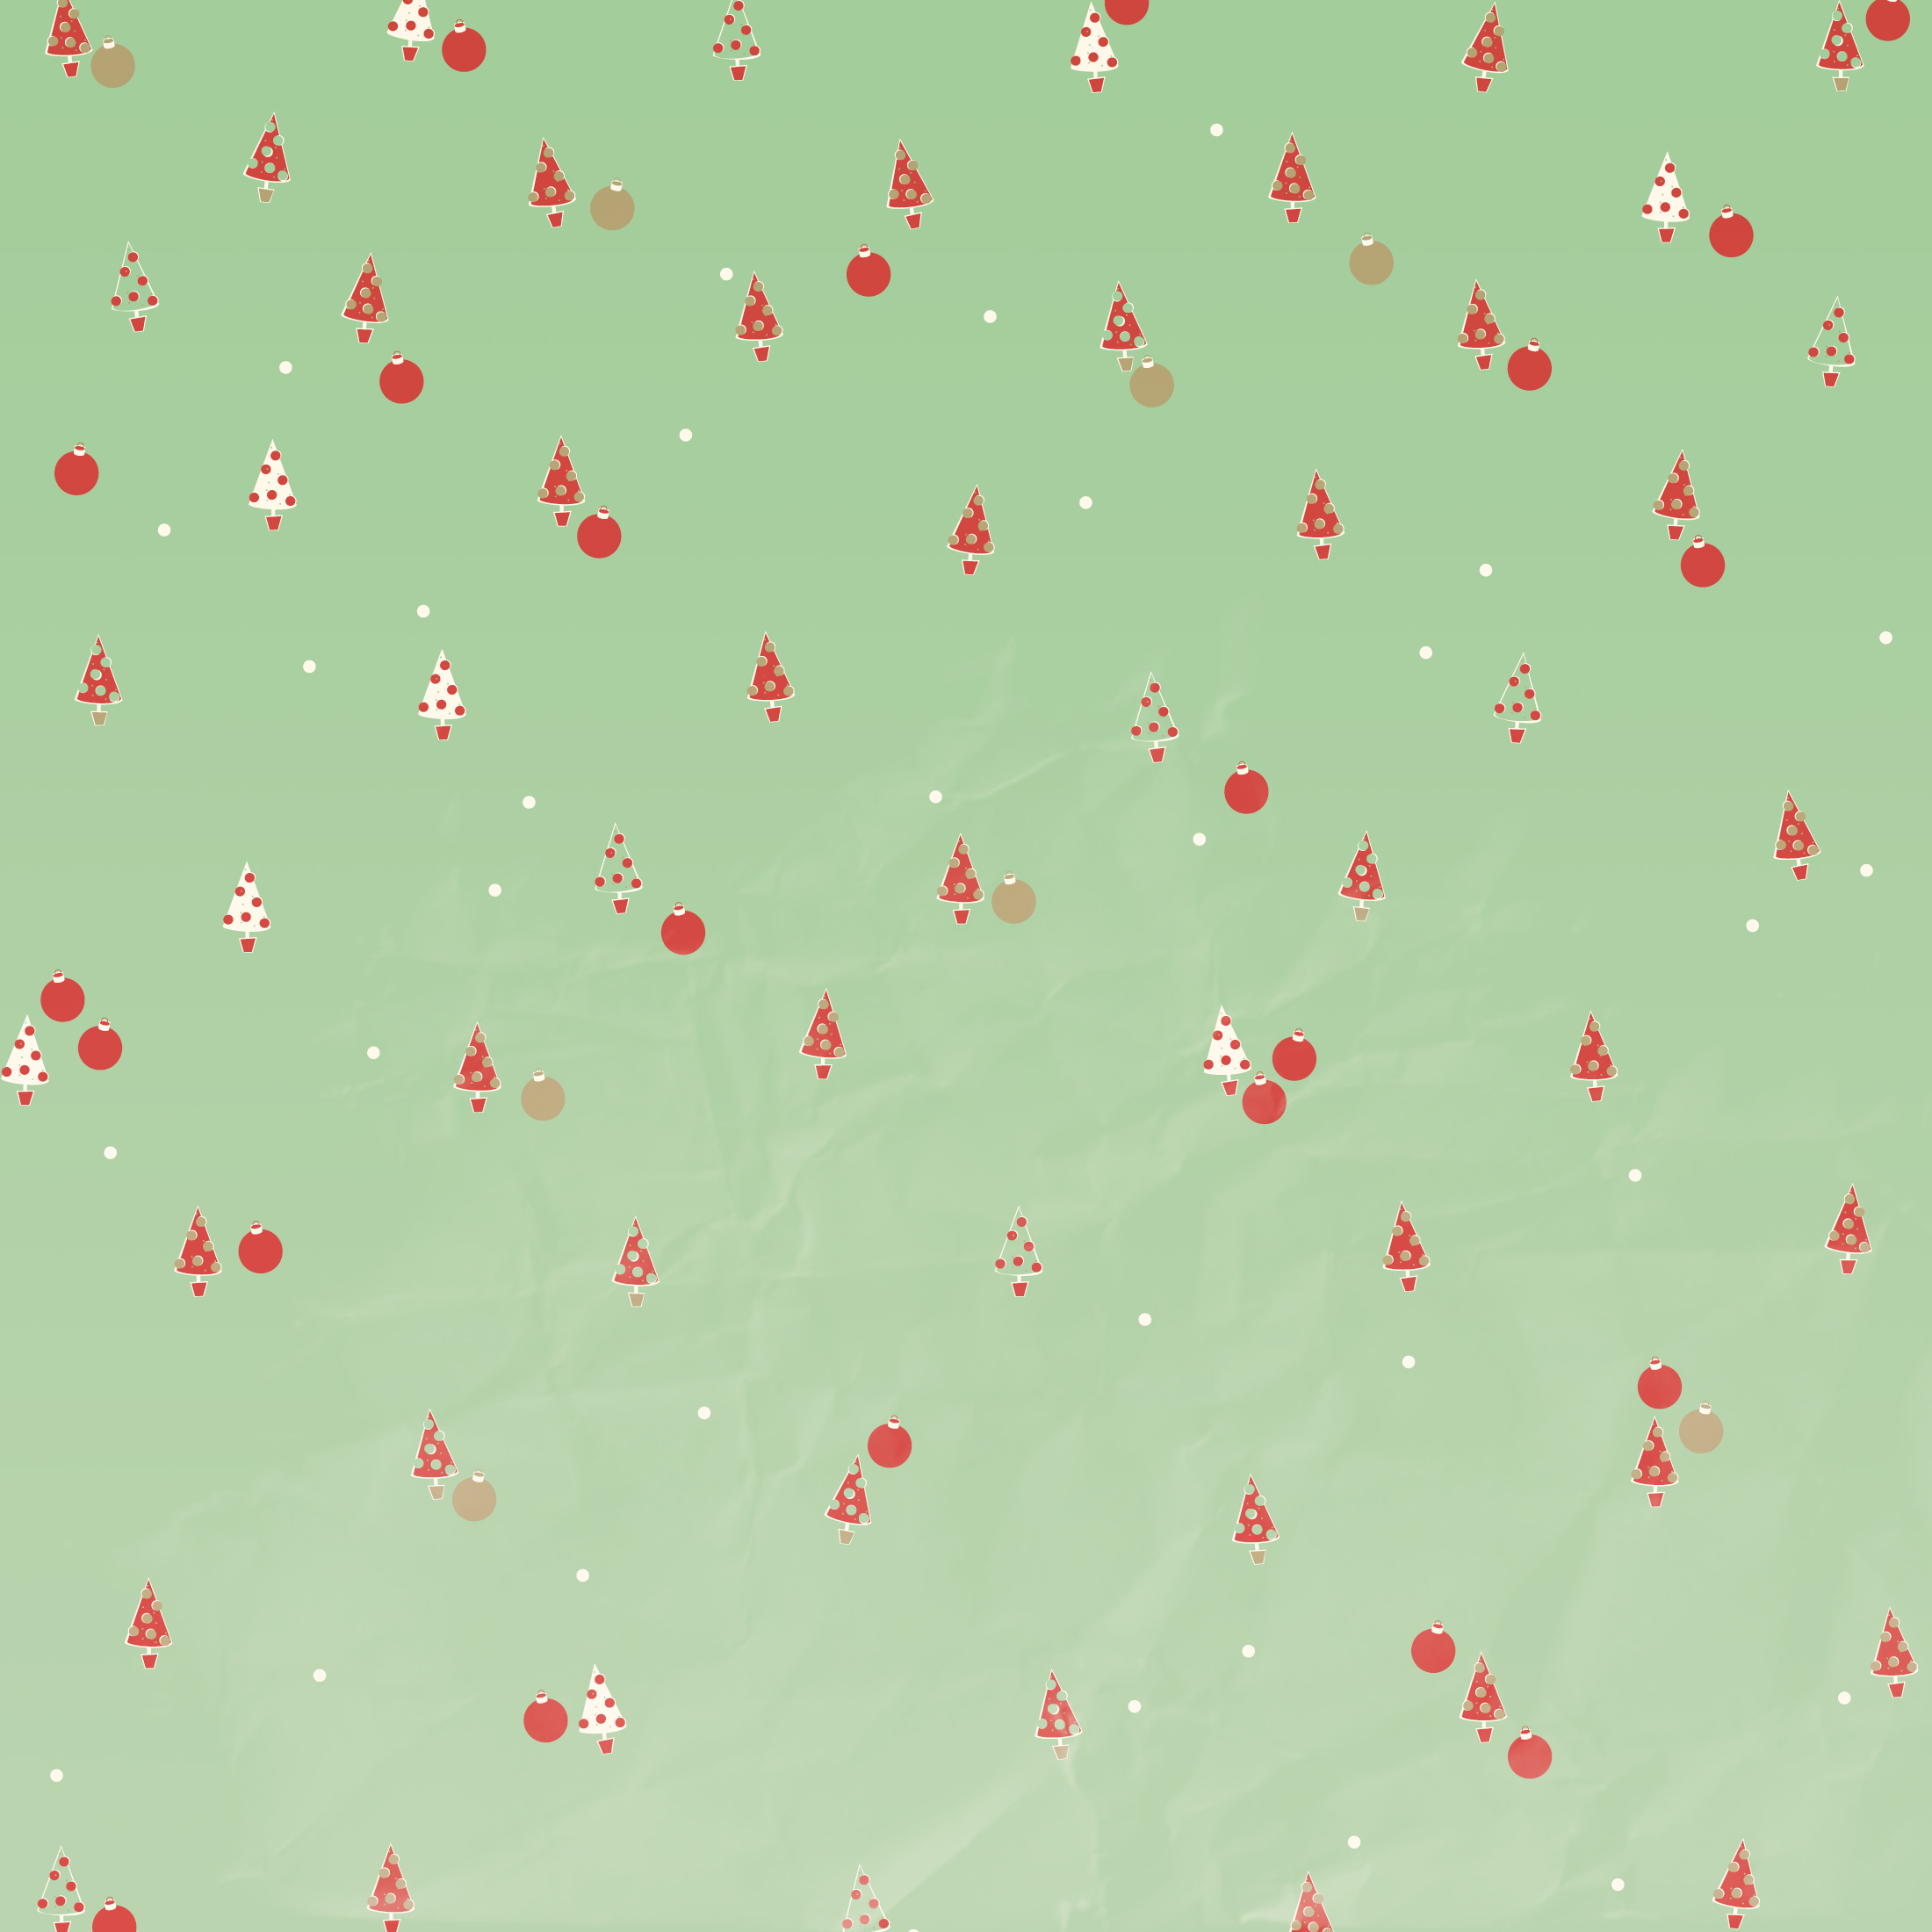 Christmas Wallpaper Tumblr Cute Backgrounds Yuyellowpagesnet 2200x2200